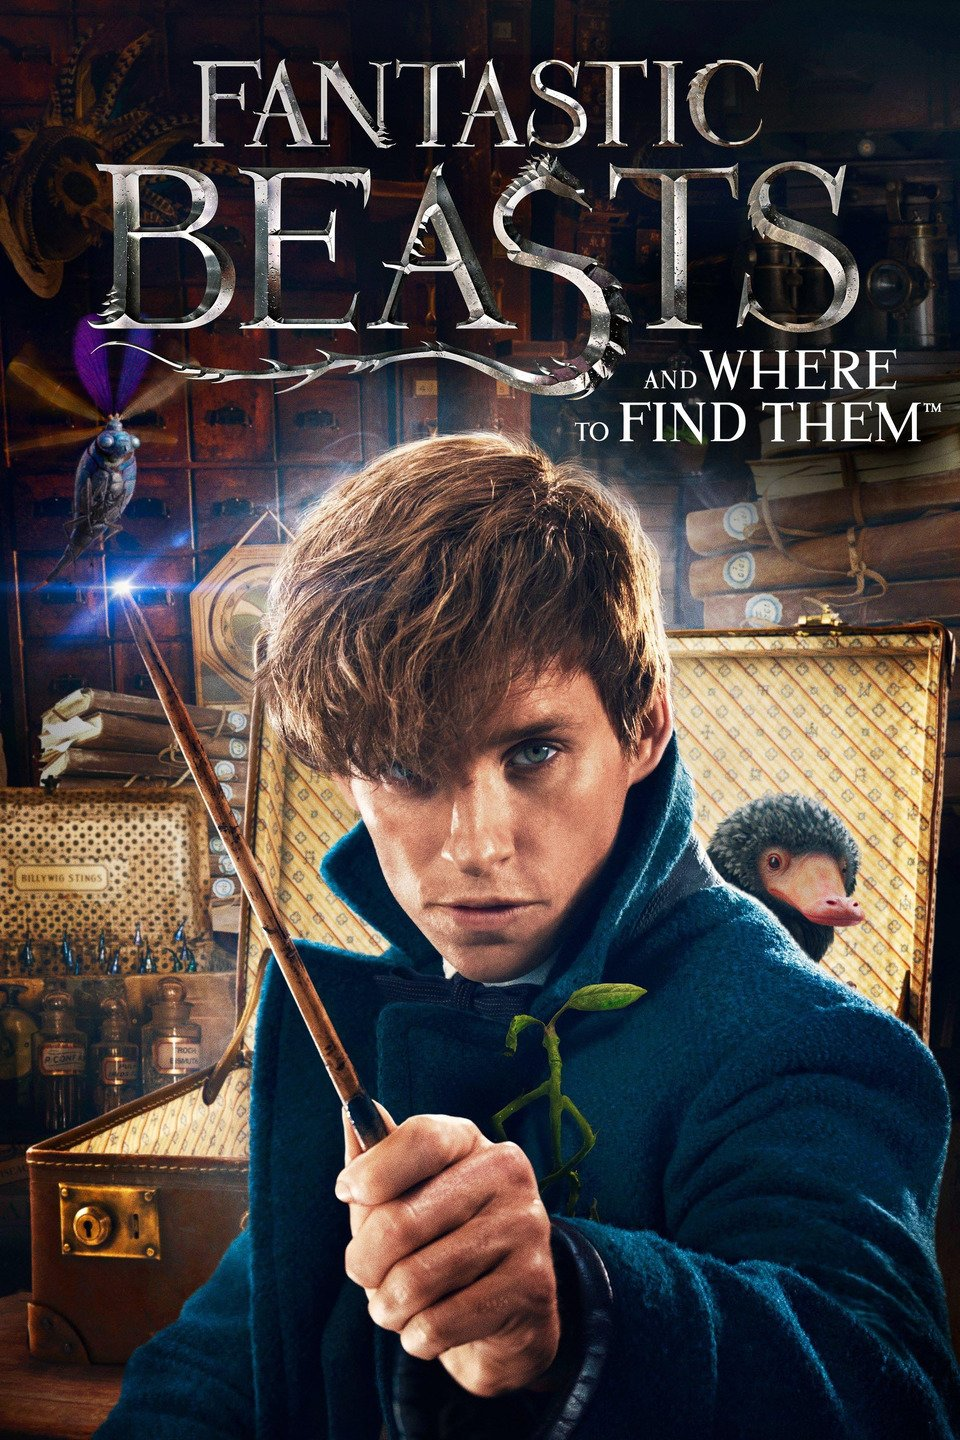 film Fantastic Beasts and Where to Find Them (2017)